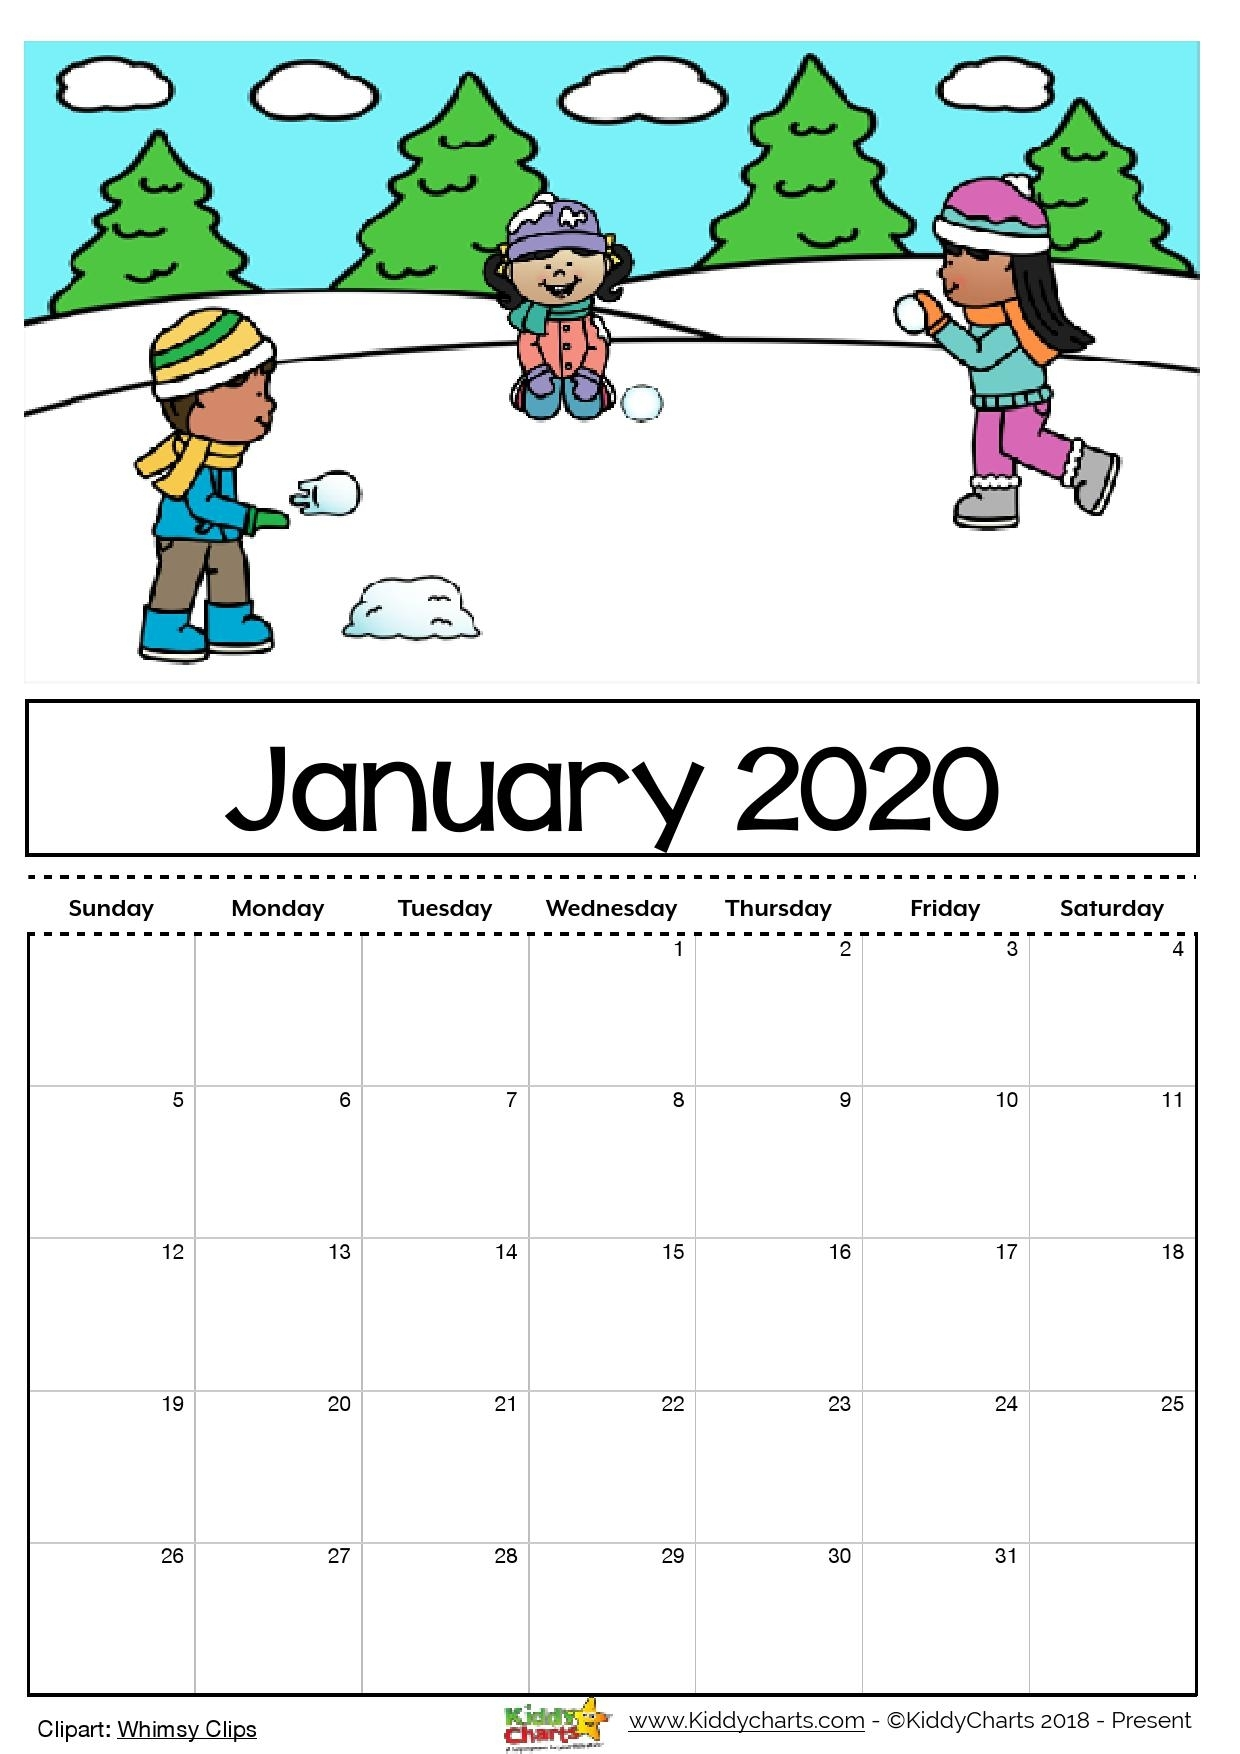 Free Printable 2020 Calendar For Kids, Including An Editable Version inside Printable Coloring Calendar 2019-2020